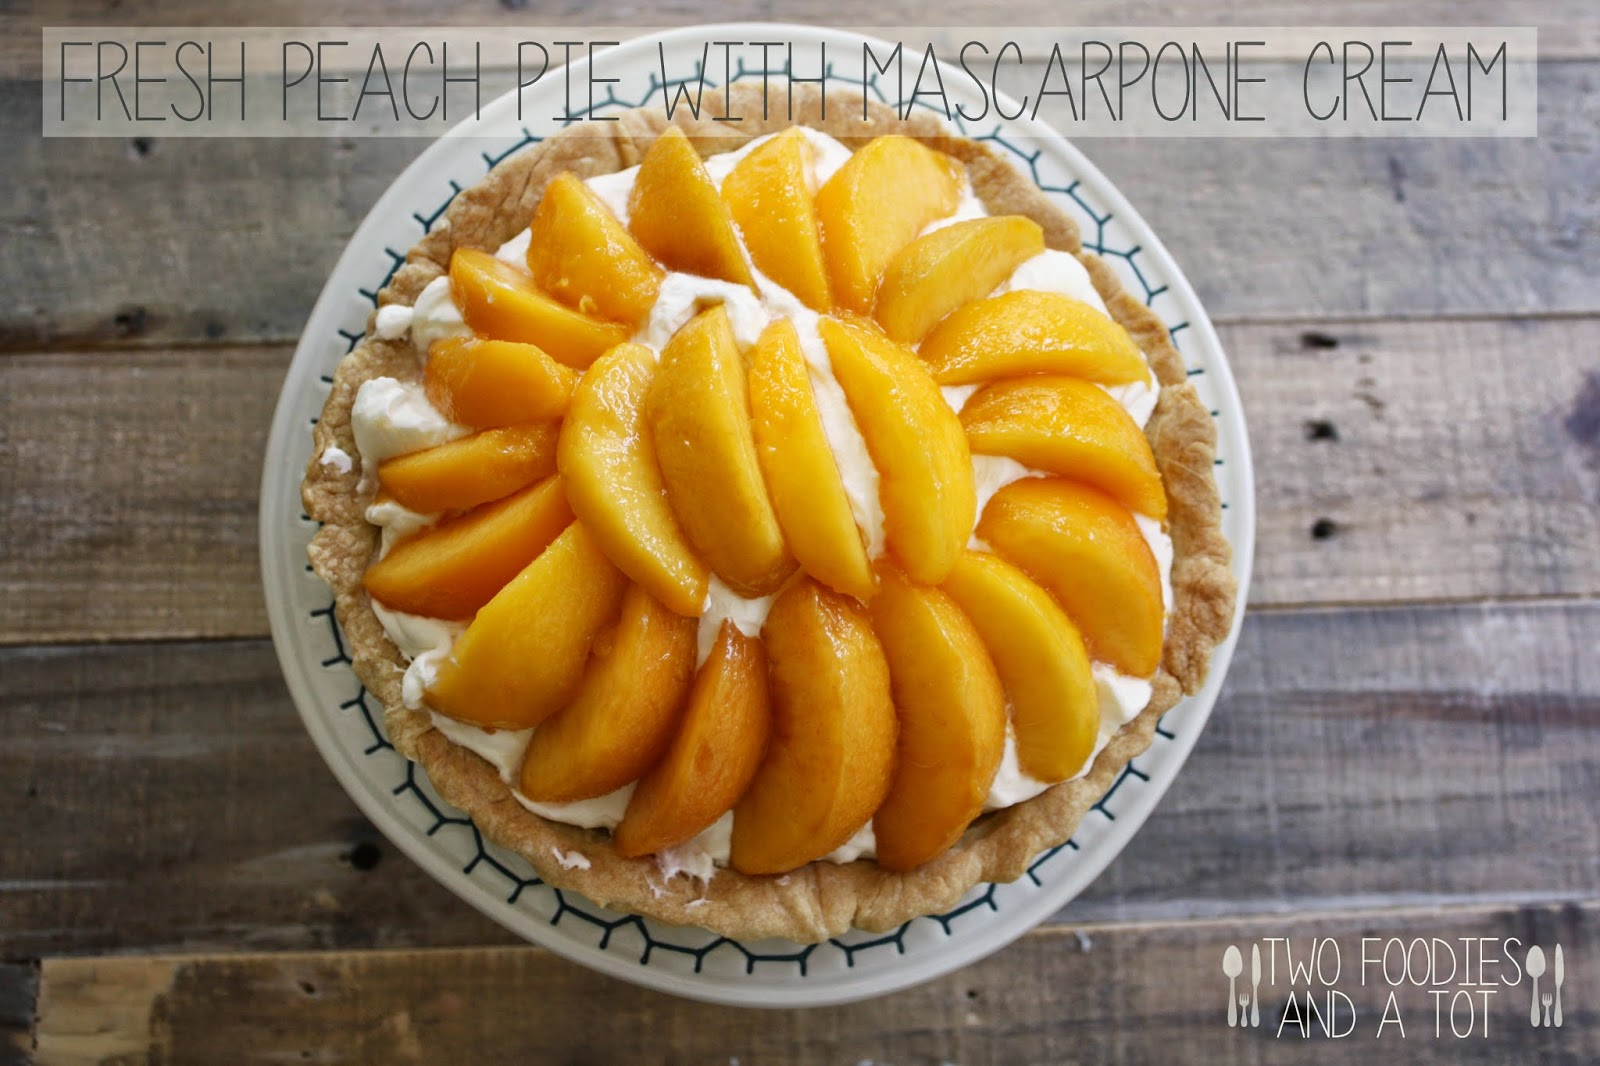 Two foodies and a tot: Fresh peach pie with mascarpone cream